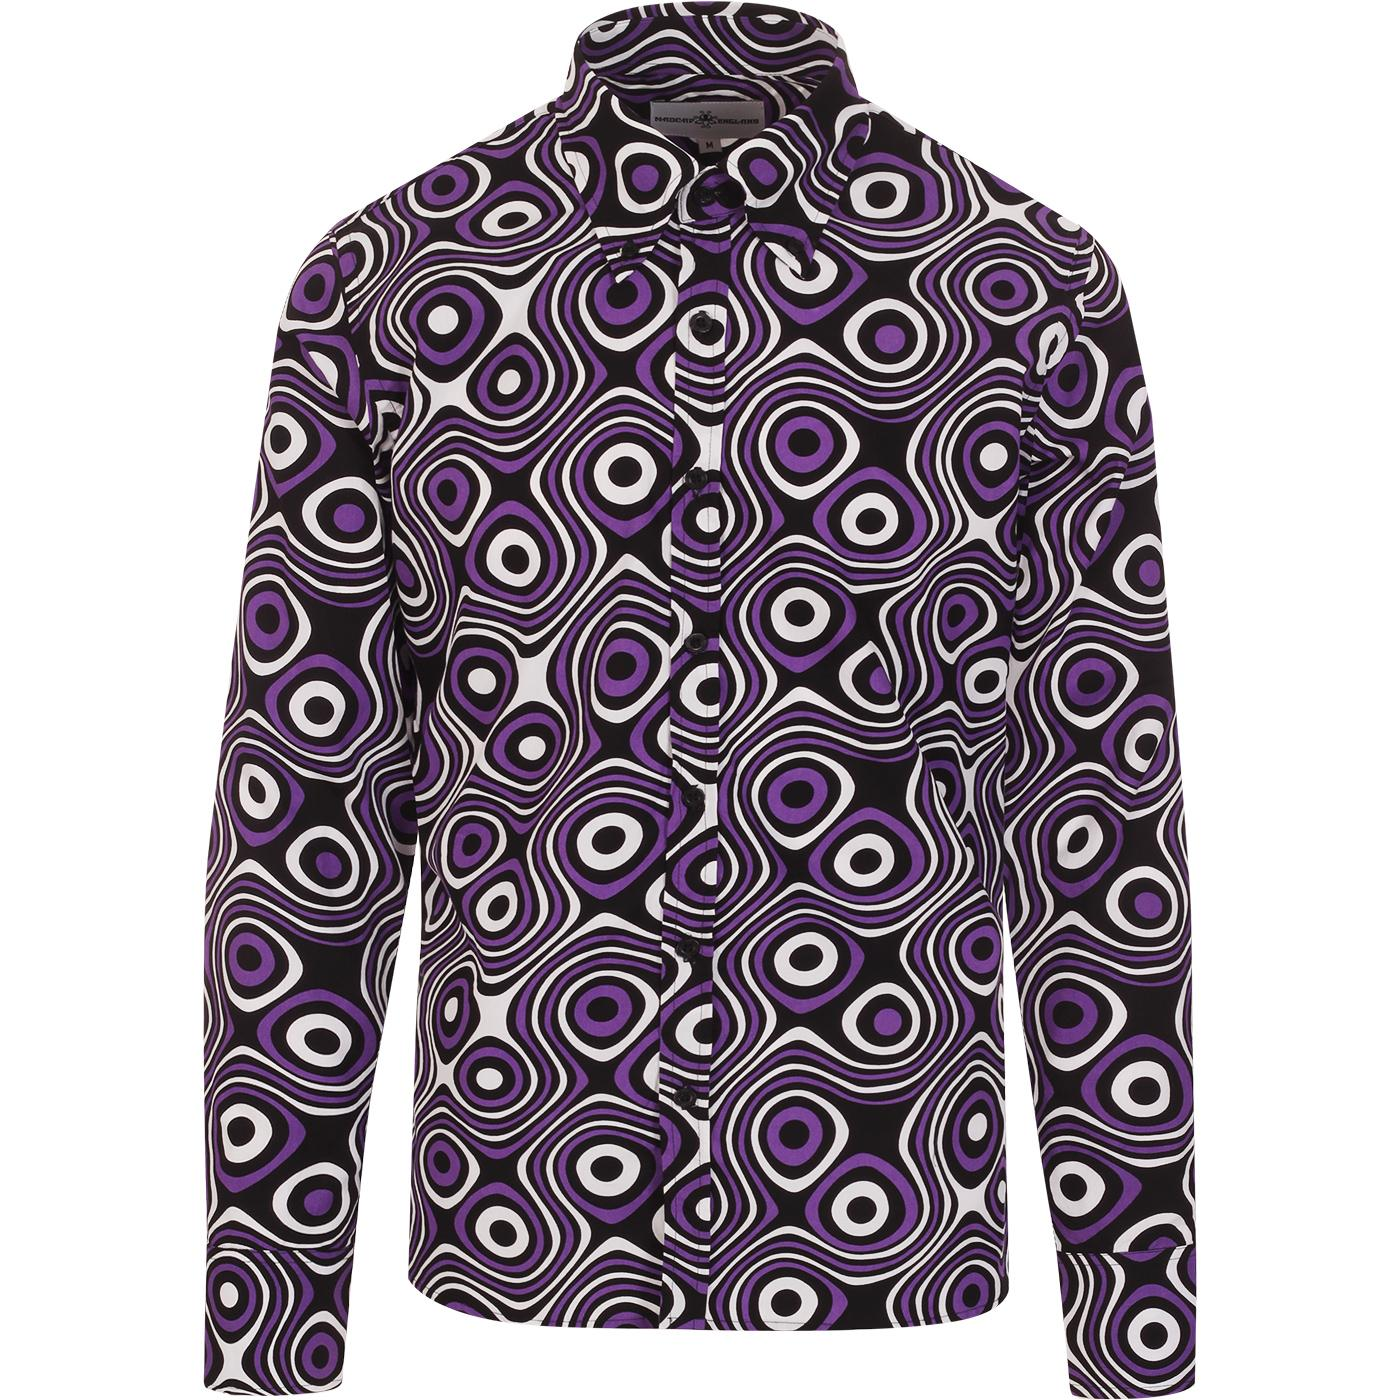 madcap england mens trip op art bold print long sleeve shirt royal lilac black white